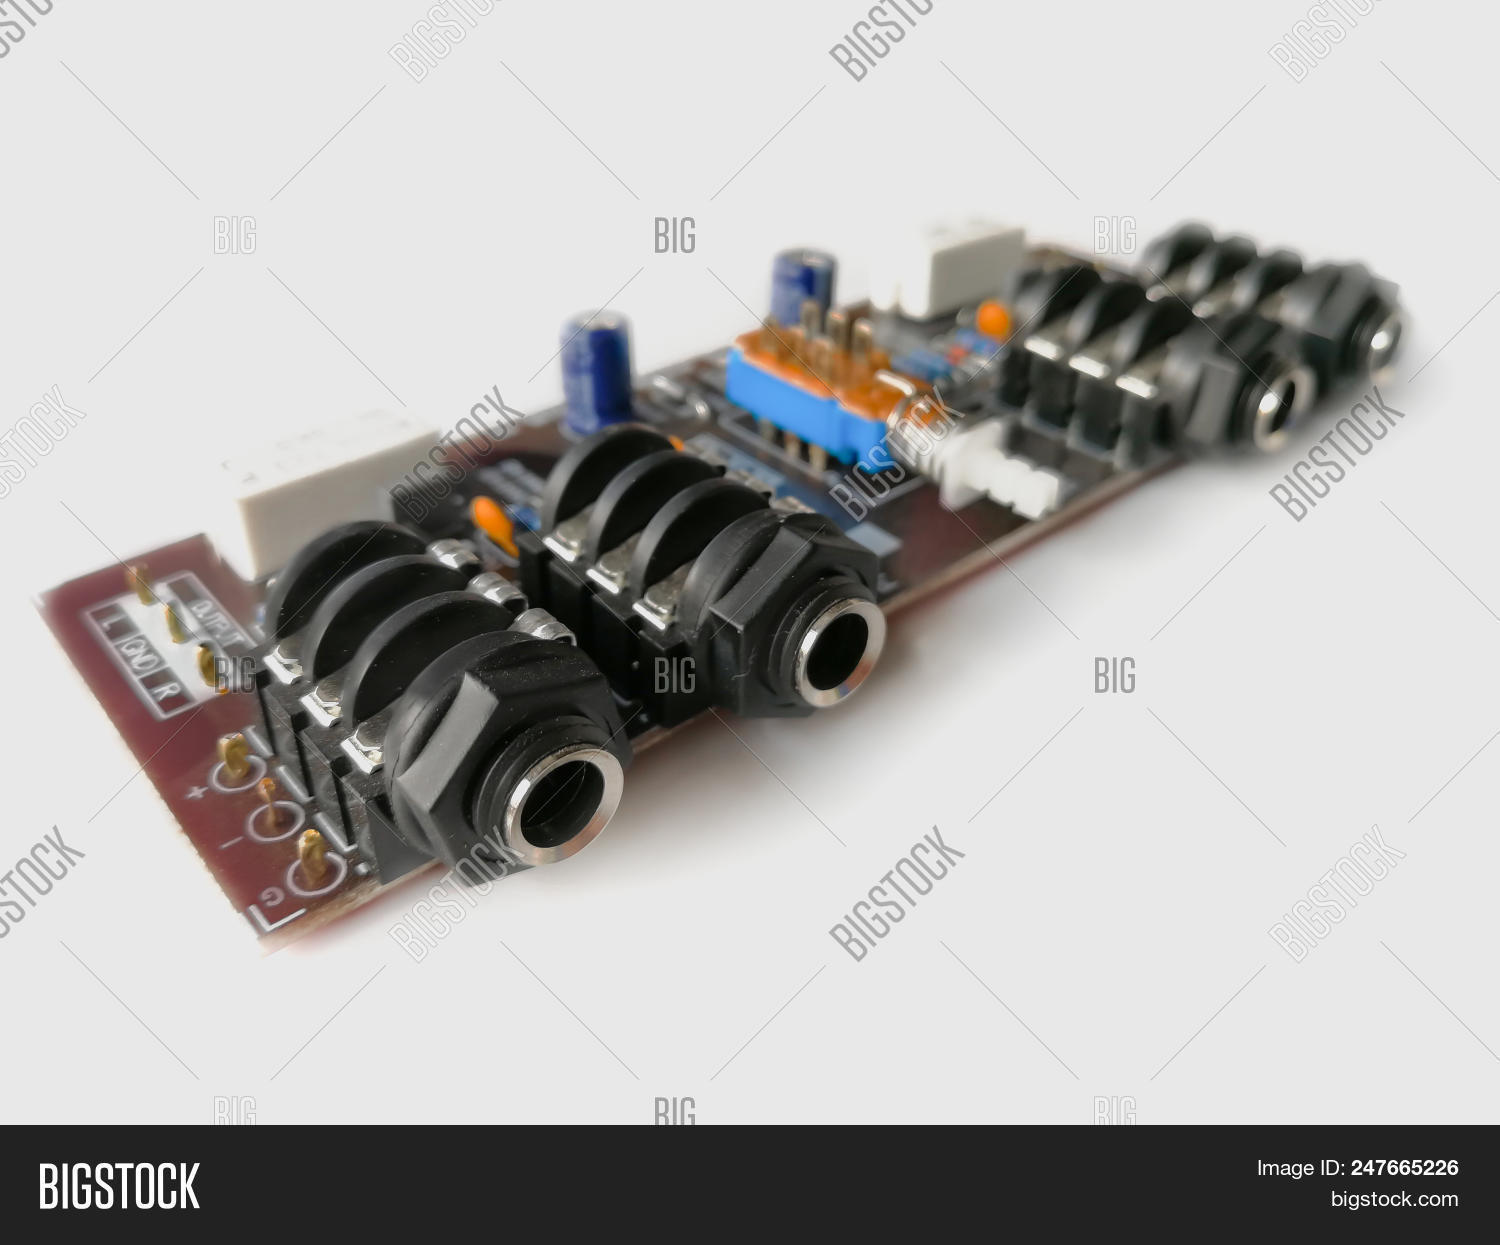 Electronic Device Image Photo Free Trial Bigstock Printed Circuit Board With Many Electrical Components Stock Pcb Isolated On White Background